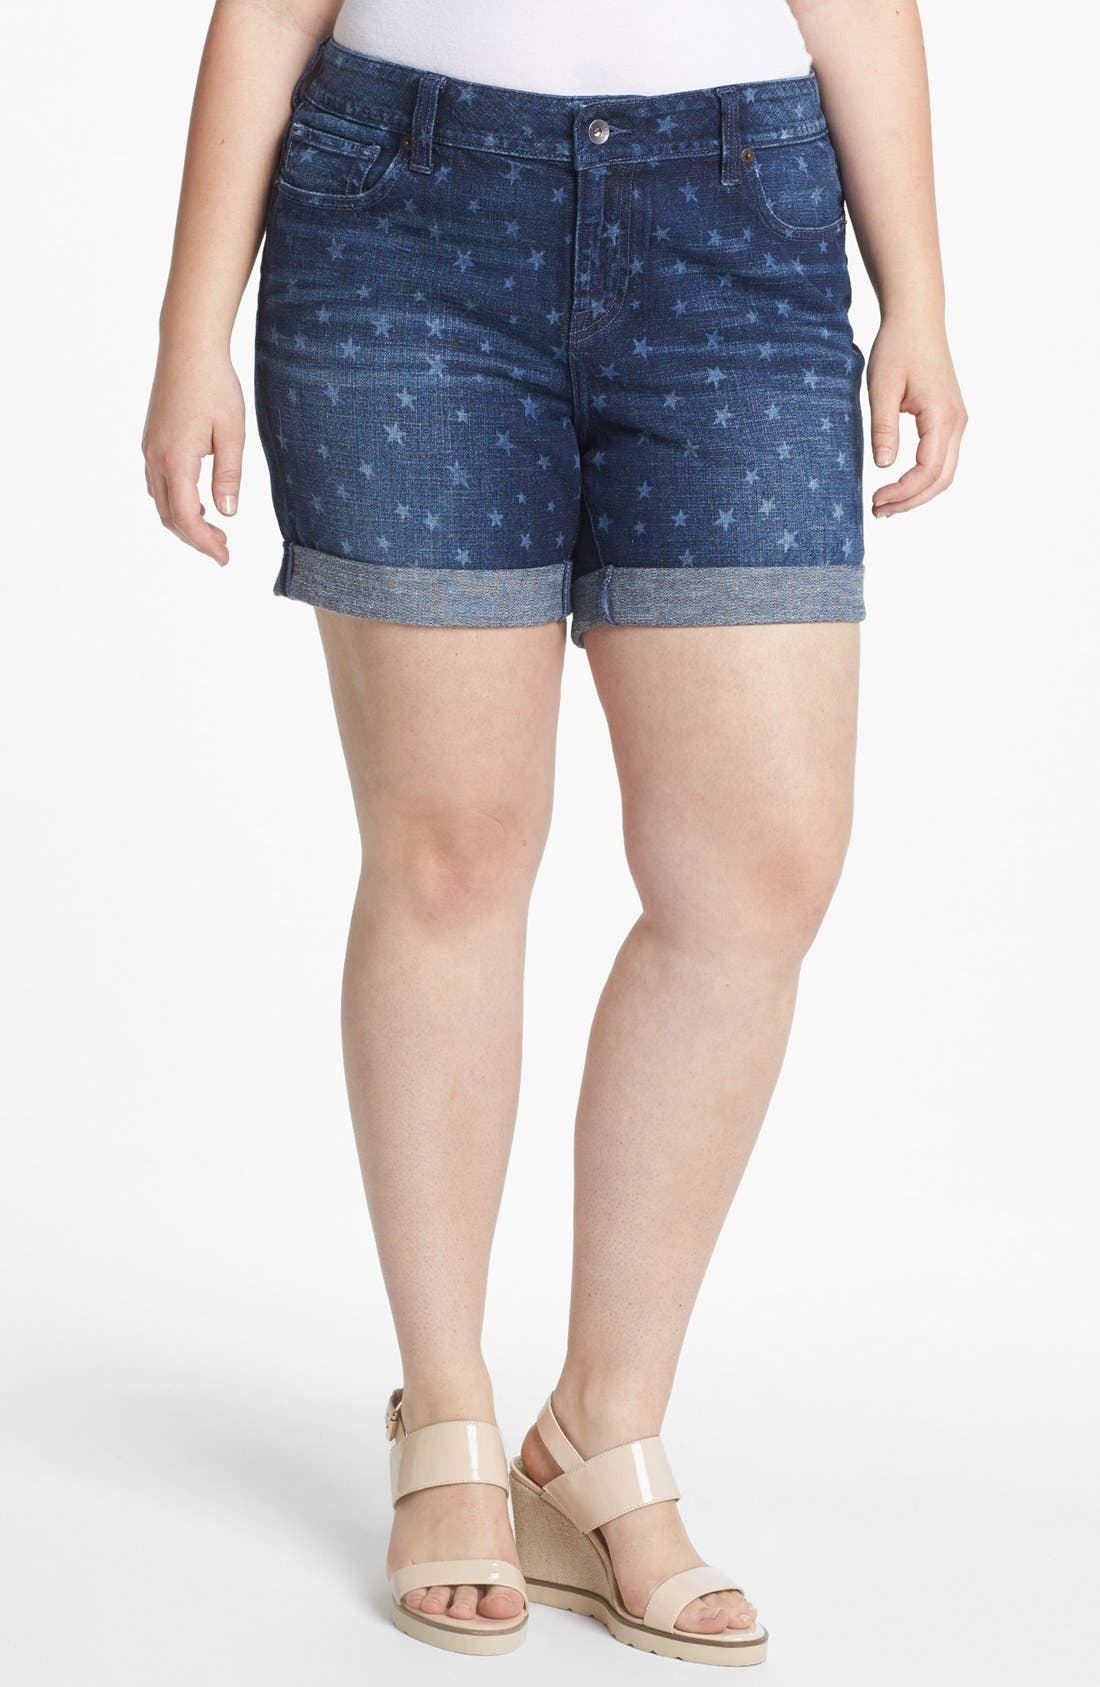 Alternate Image 1 Selected - Lucky Brand 'Americana' Denim Shorts (Plus Size)